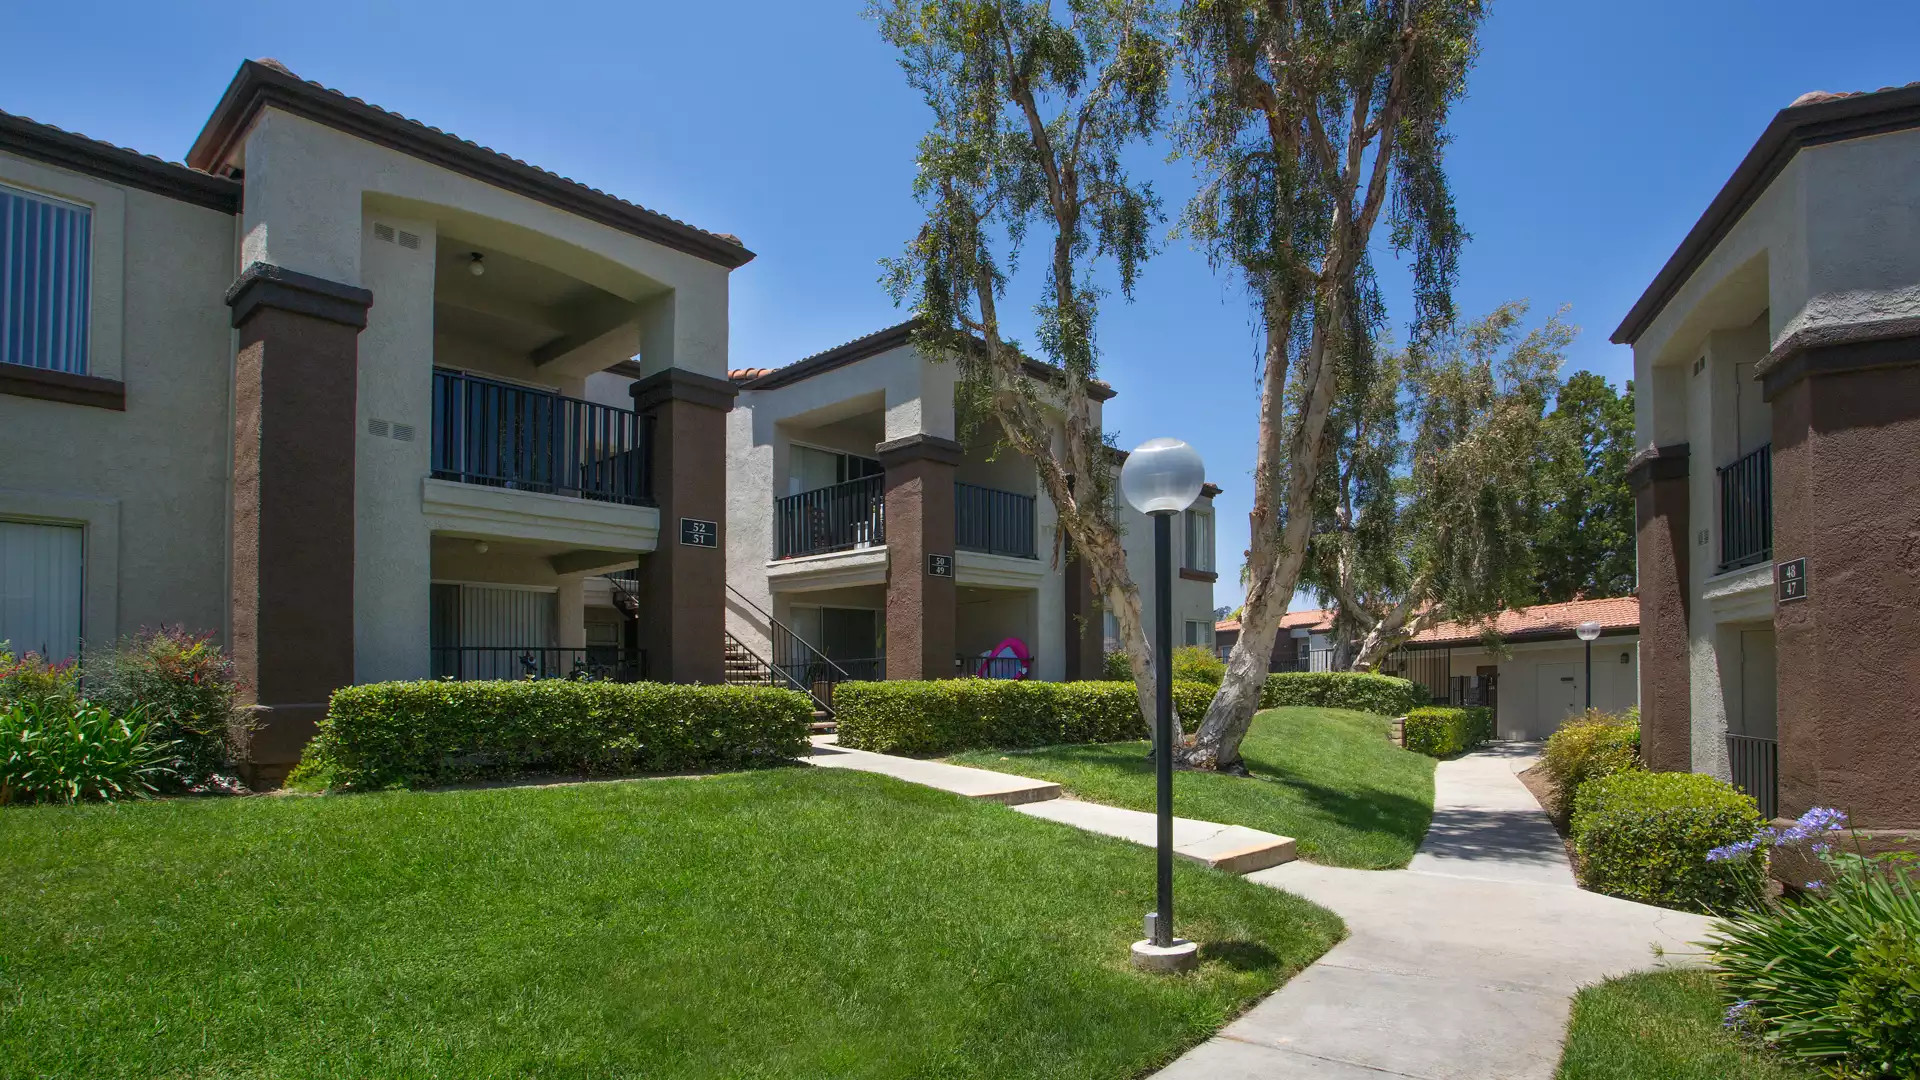 Portofino Apartments - Chino Hills, CA